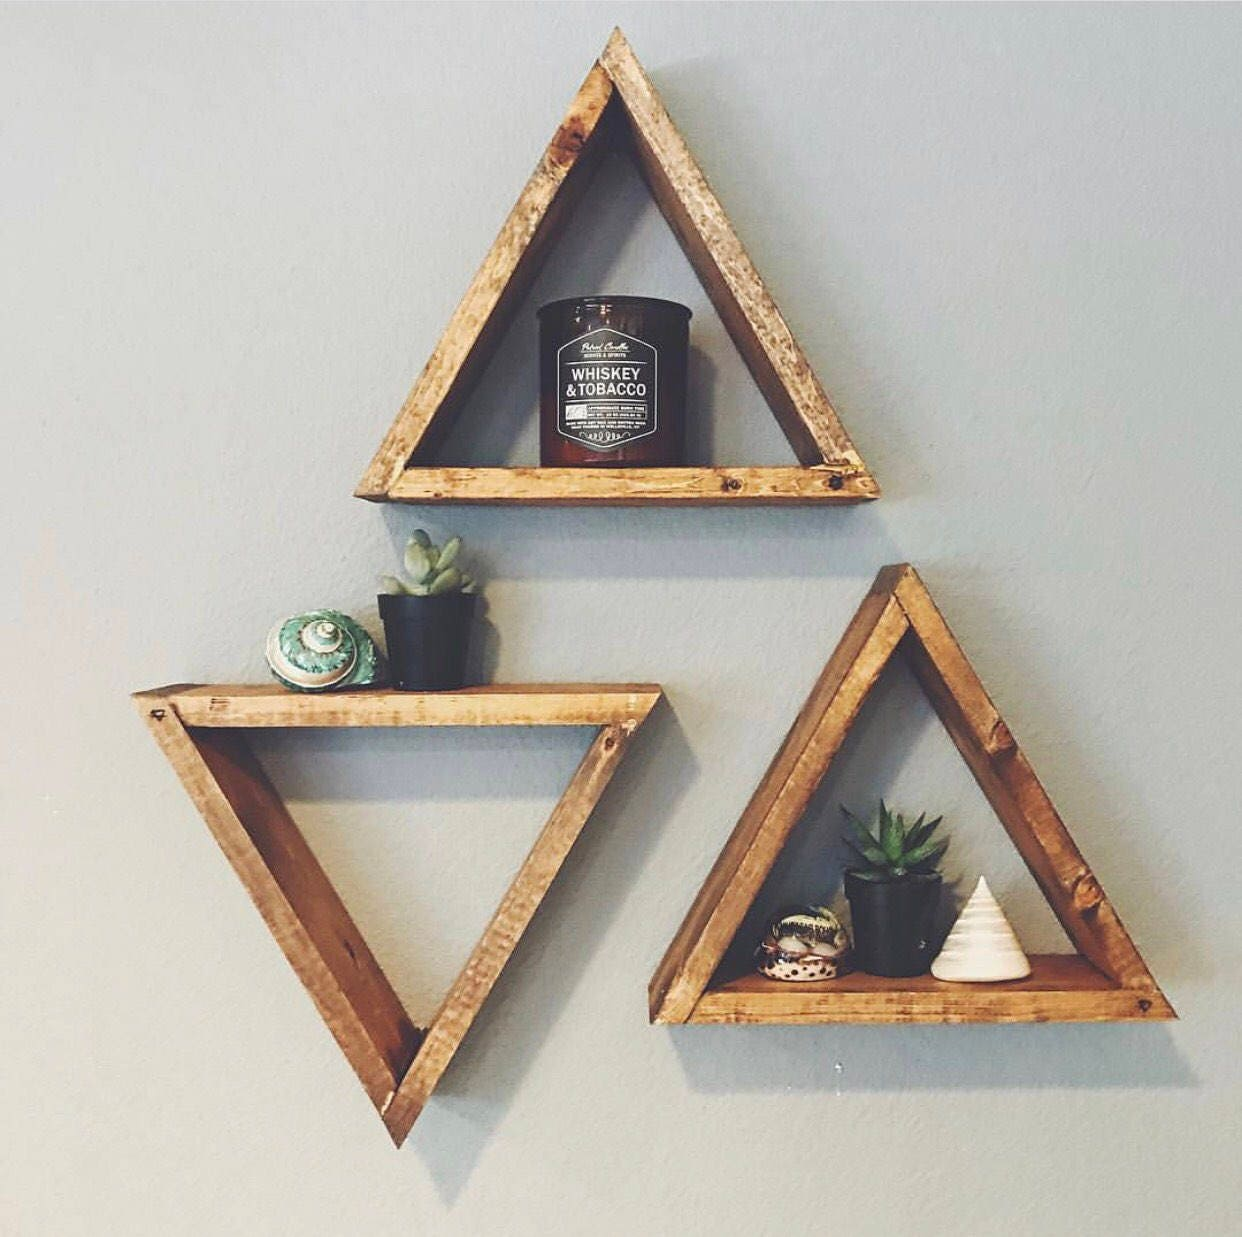 single wood triangle shelf geometric wall shelf boho decor. Black Bedroom Furniture Sets. Home Design Ideas